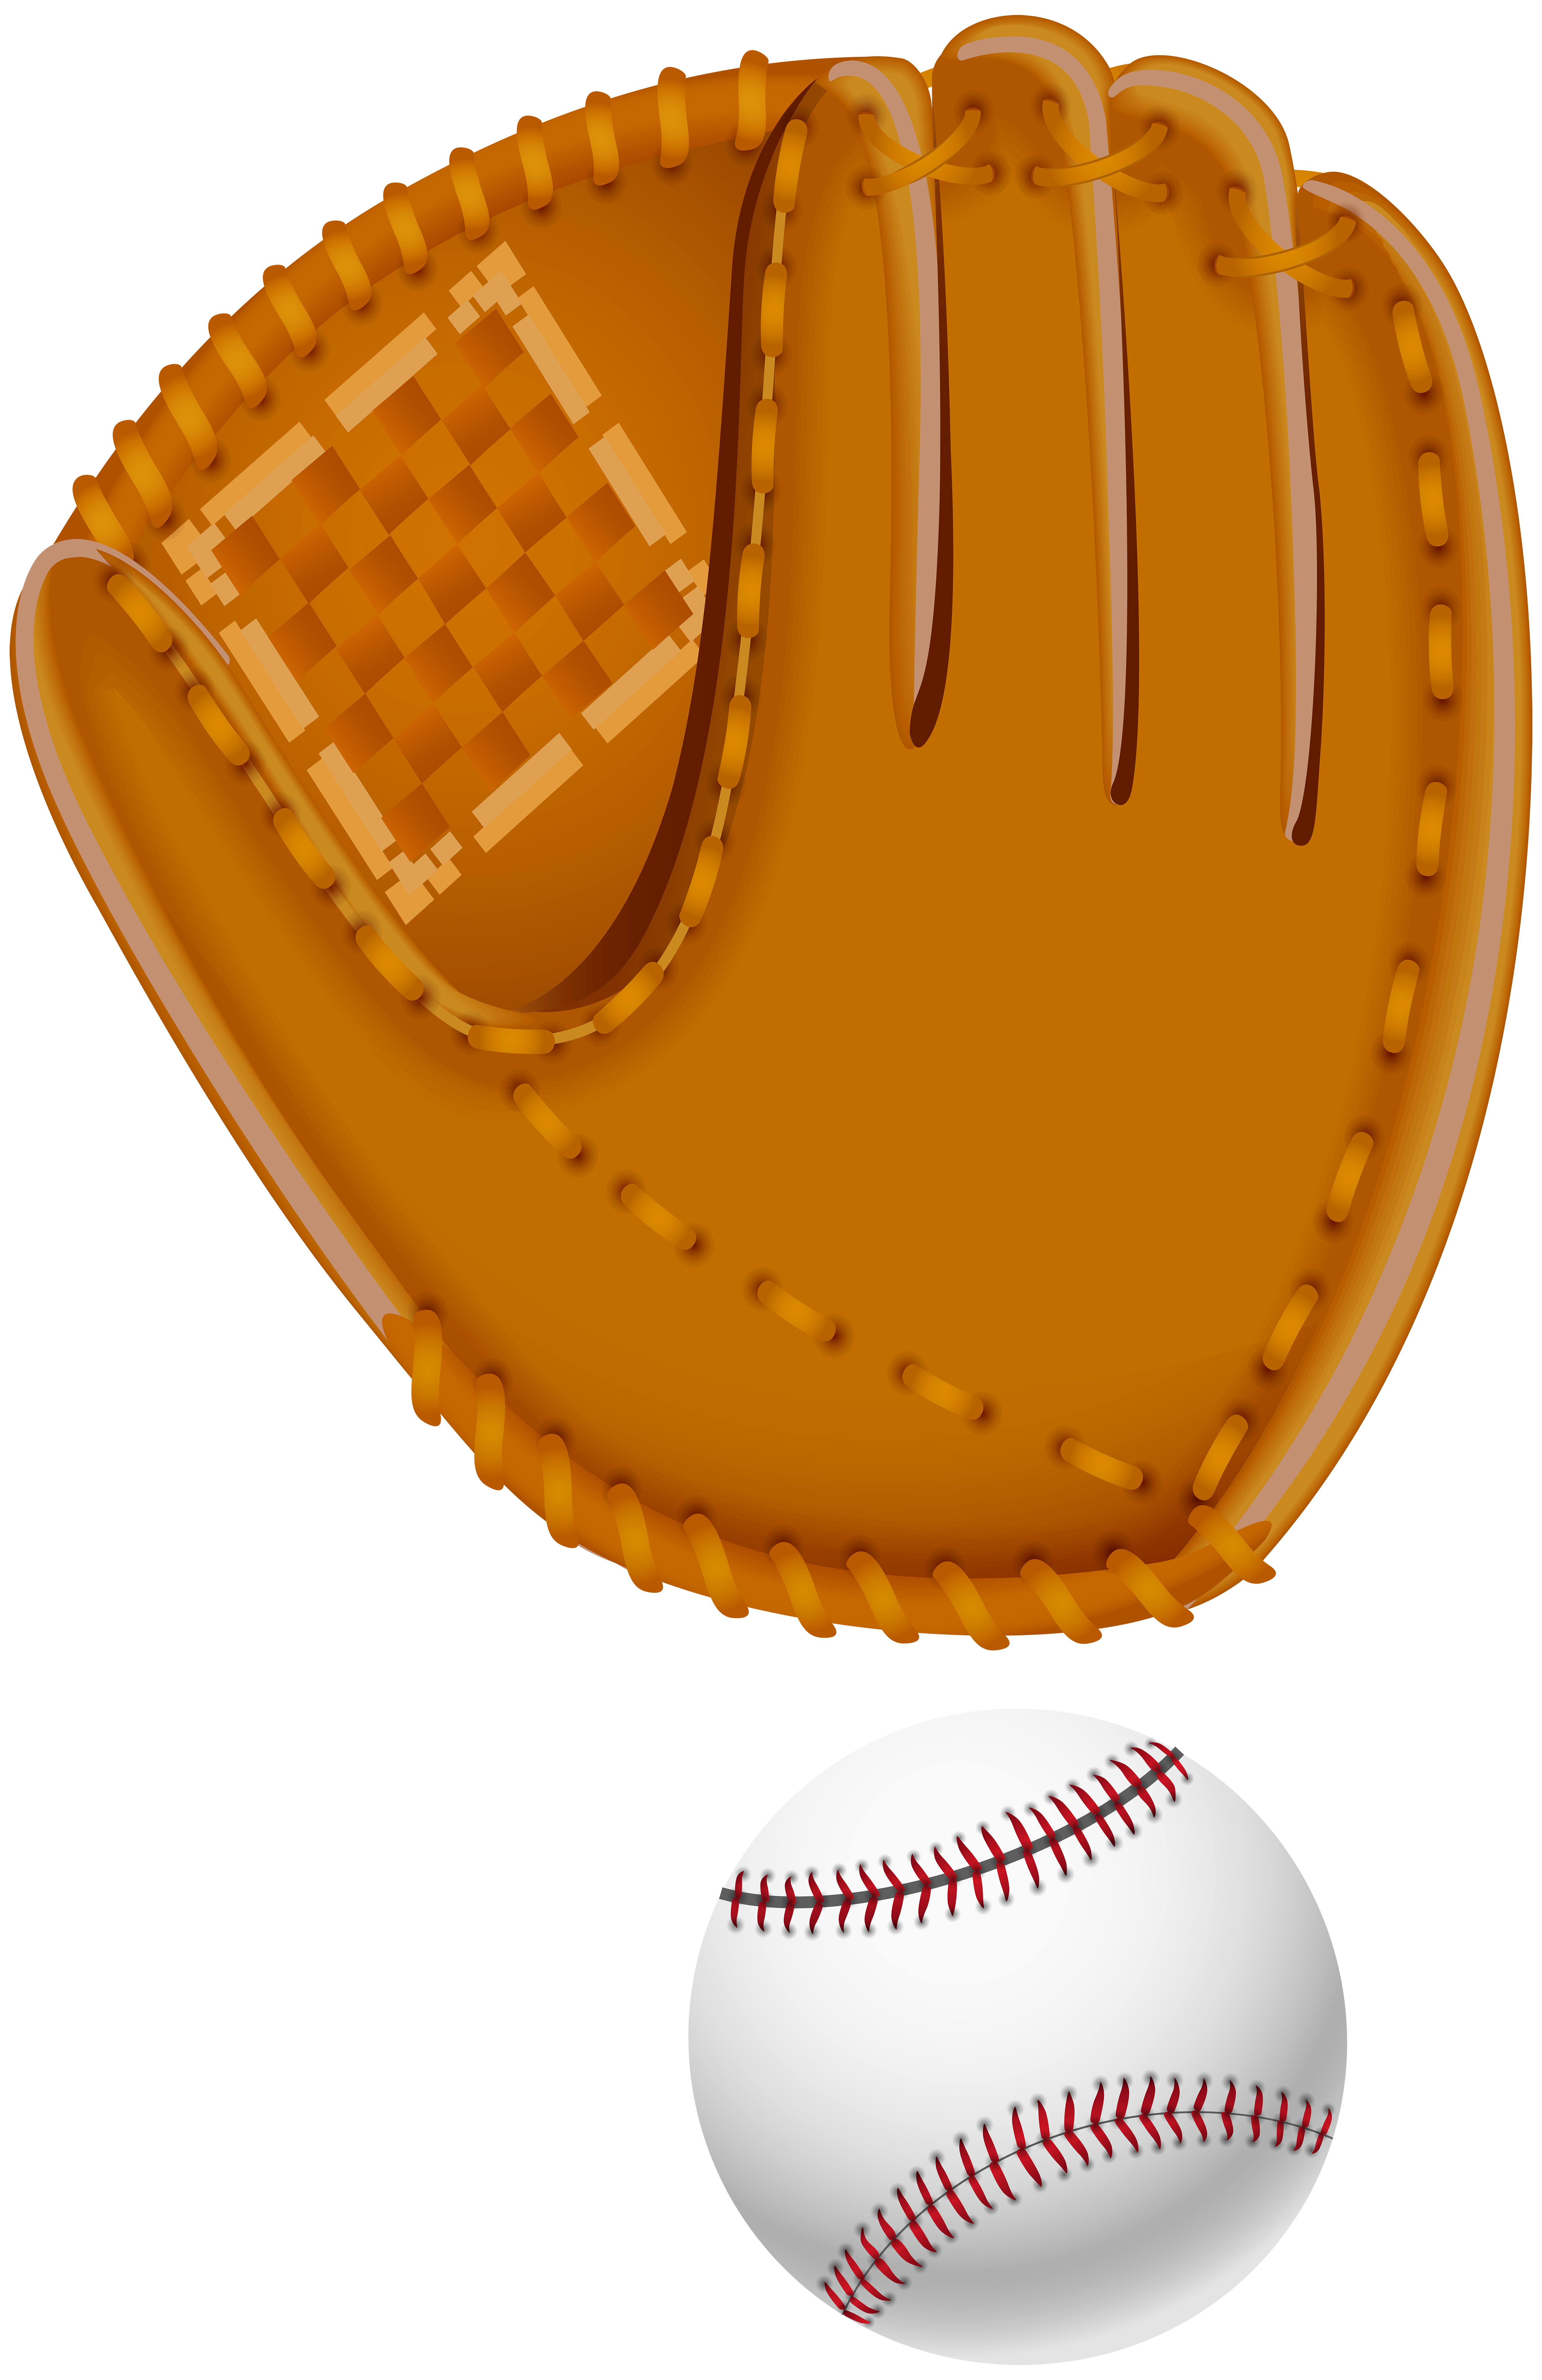 Baseball glove clipart png. Clip art image gallery